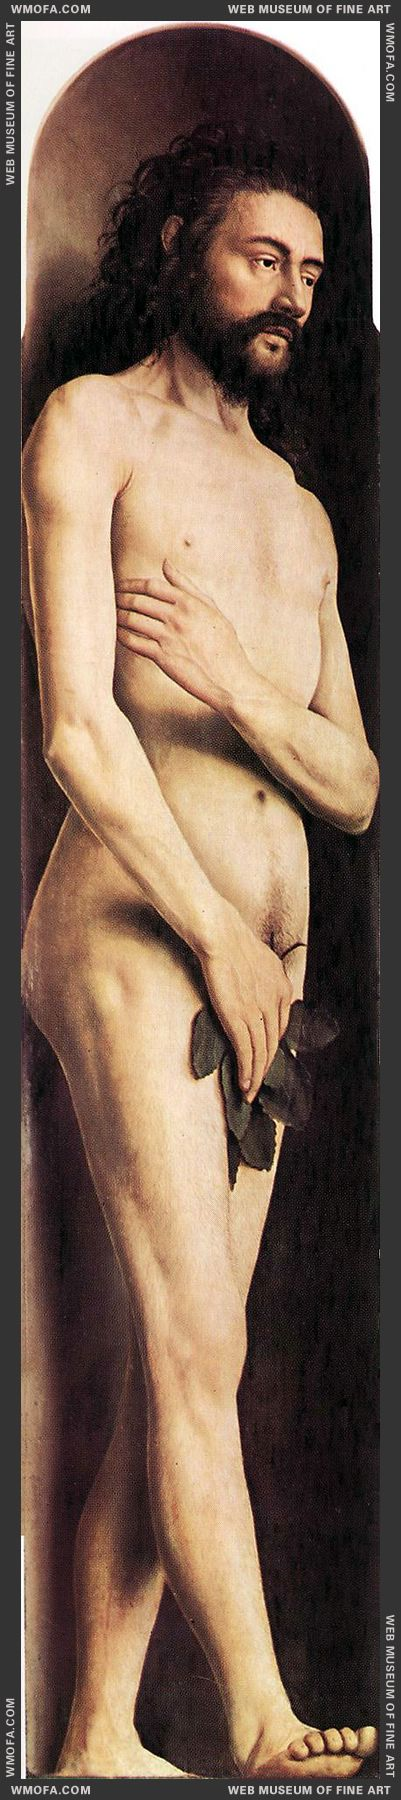 The Ghent Altarpiece - Adam 1425-1429 by Eyck, Jan van